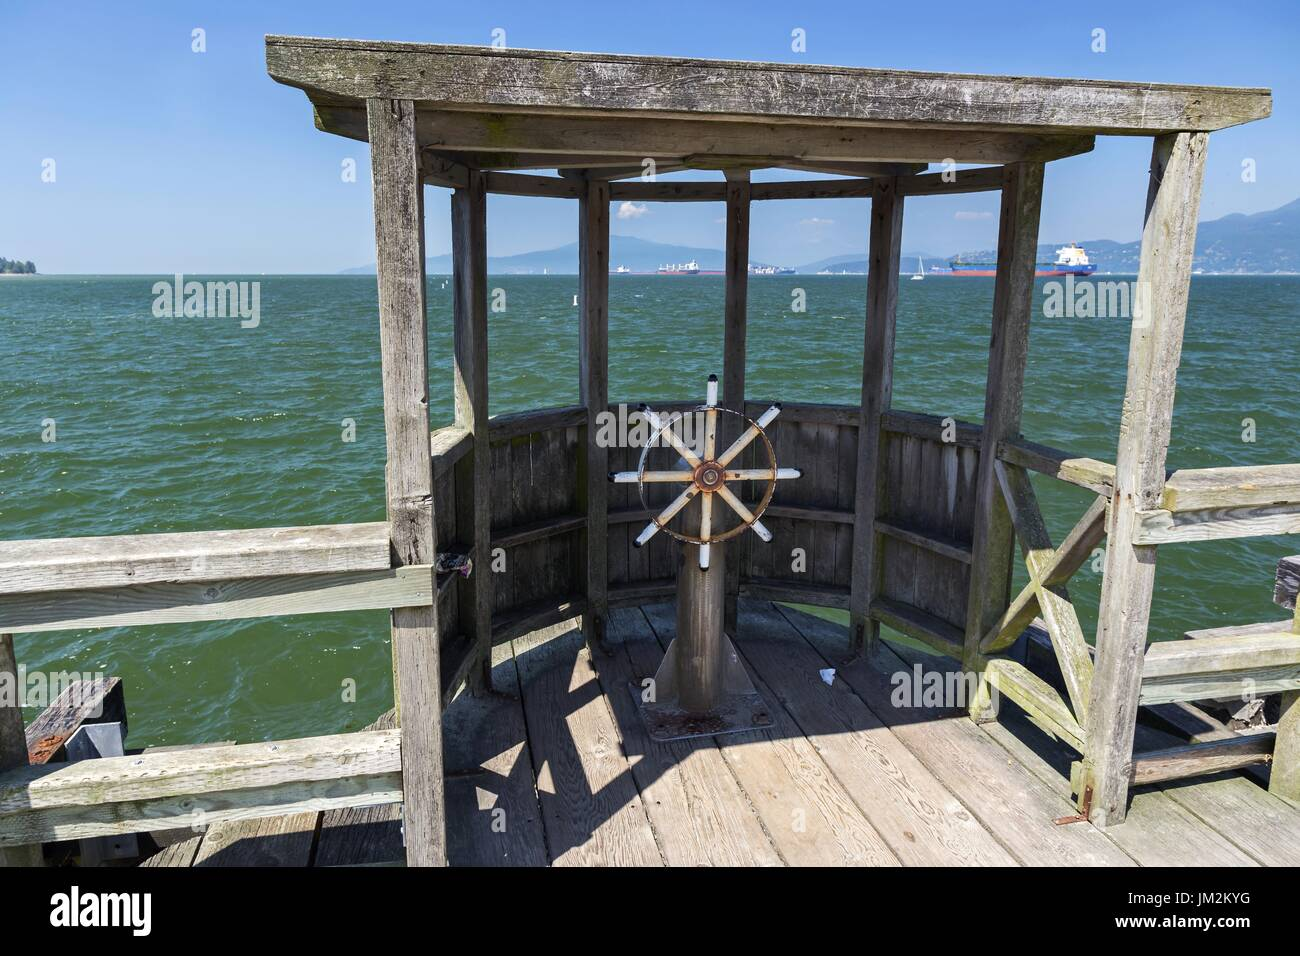 Ship Wheel and Wooden Quay Structure on Jericho Pier with view of Burrard Inlet near University of British Columbia in Vancouver BC Canada - Stock Image